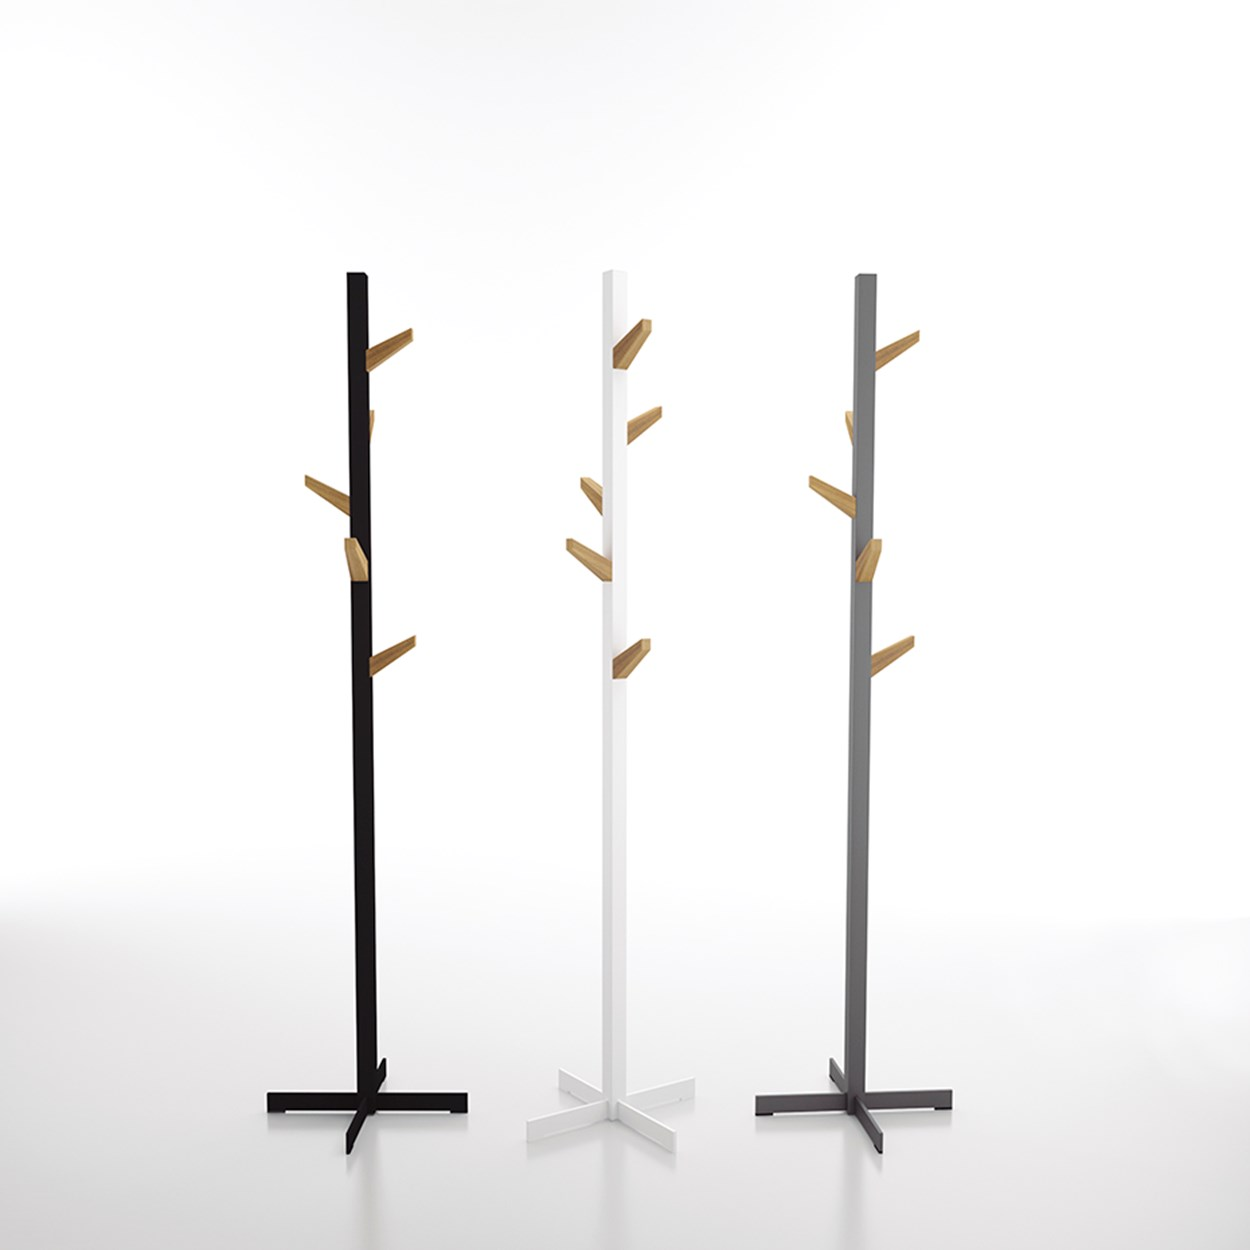 systemtronic-second-tree-coatrack-01.jpg